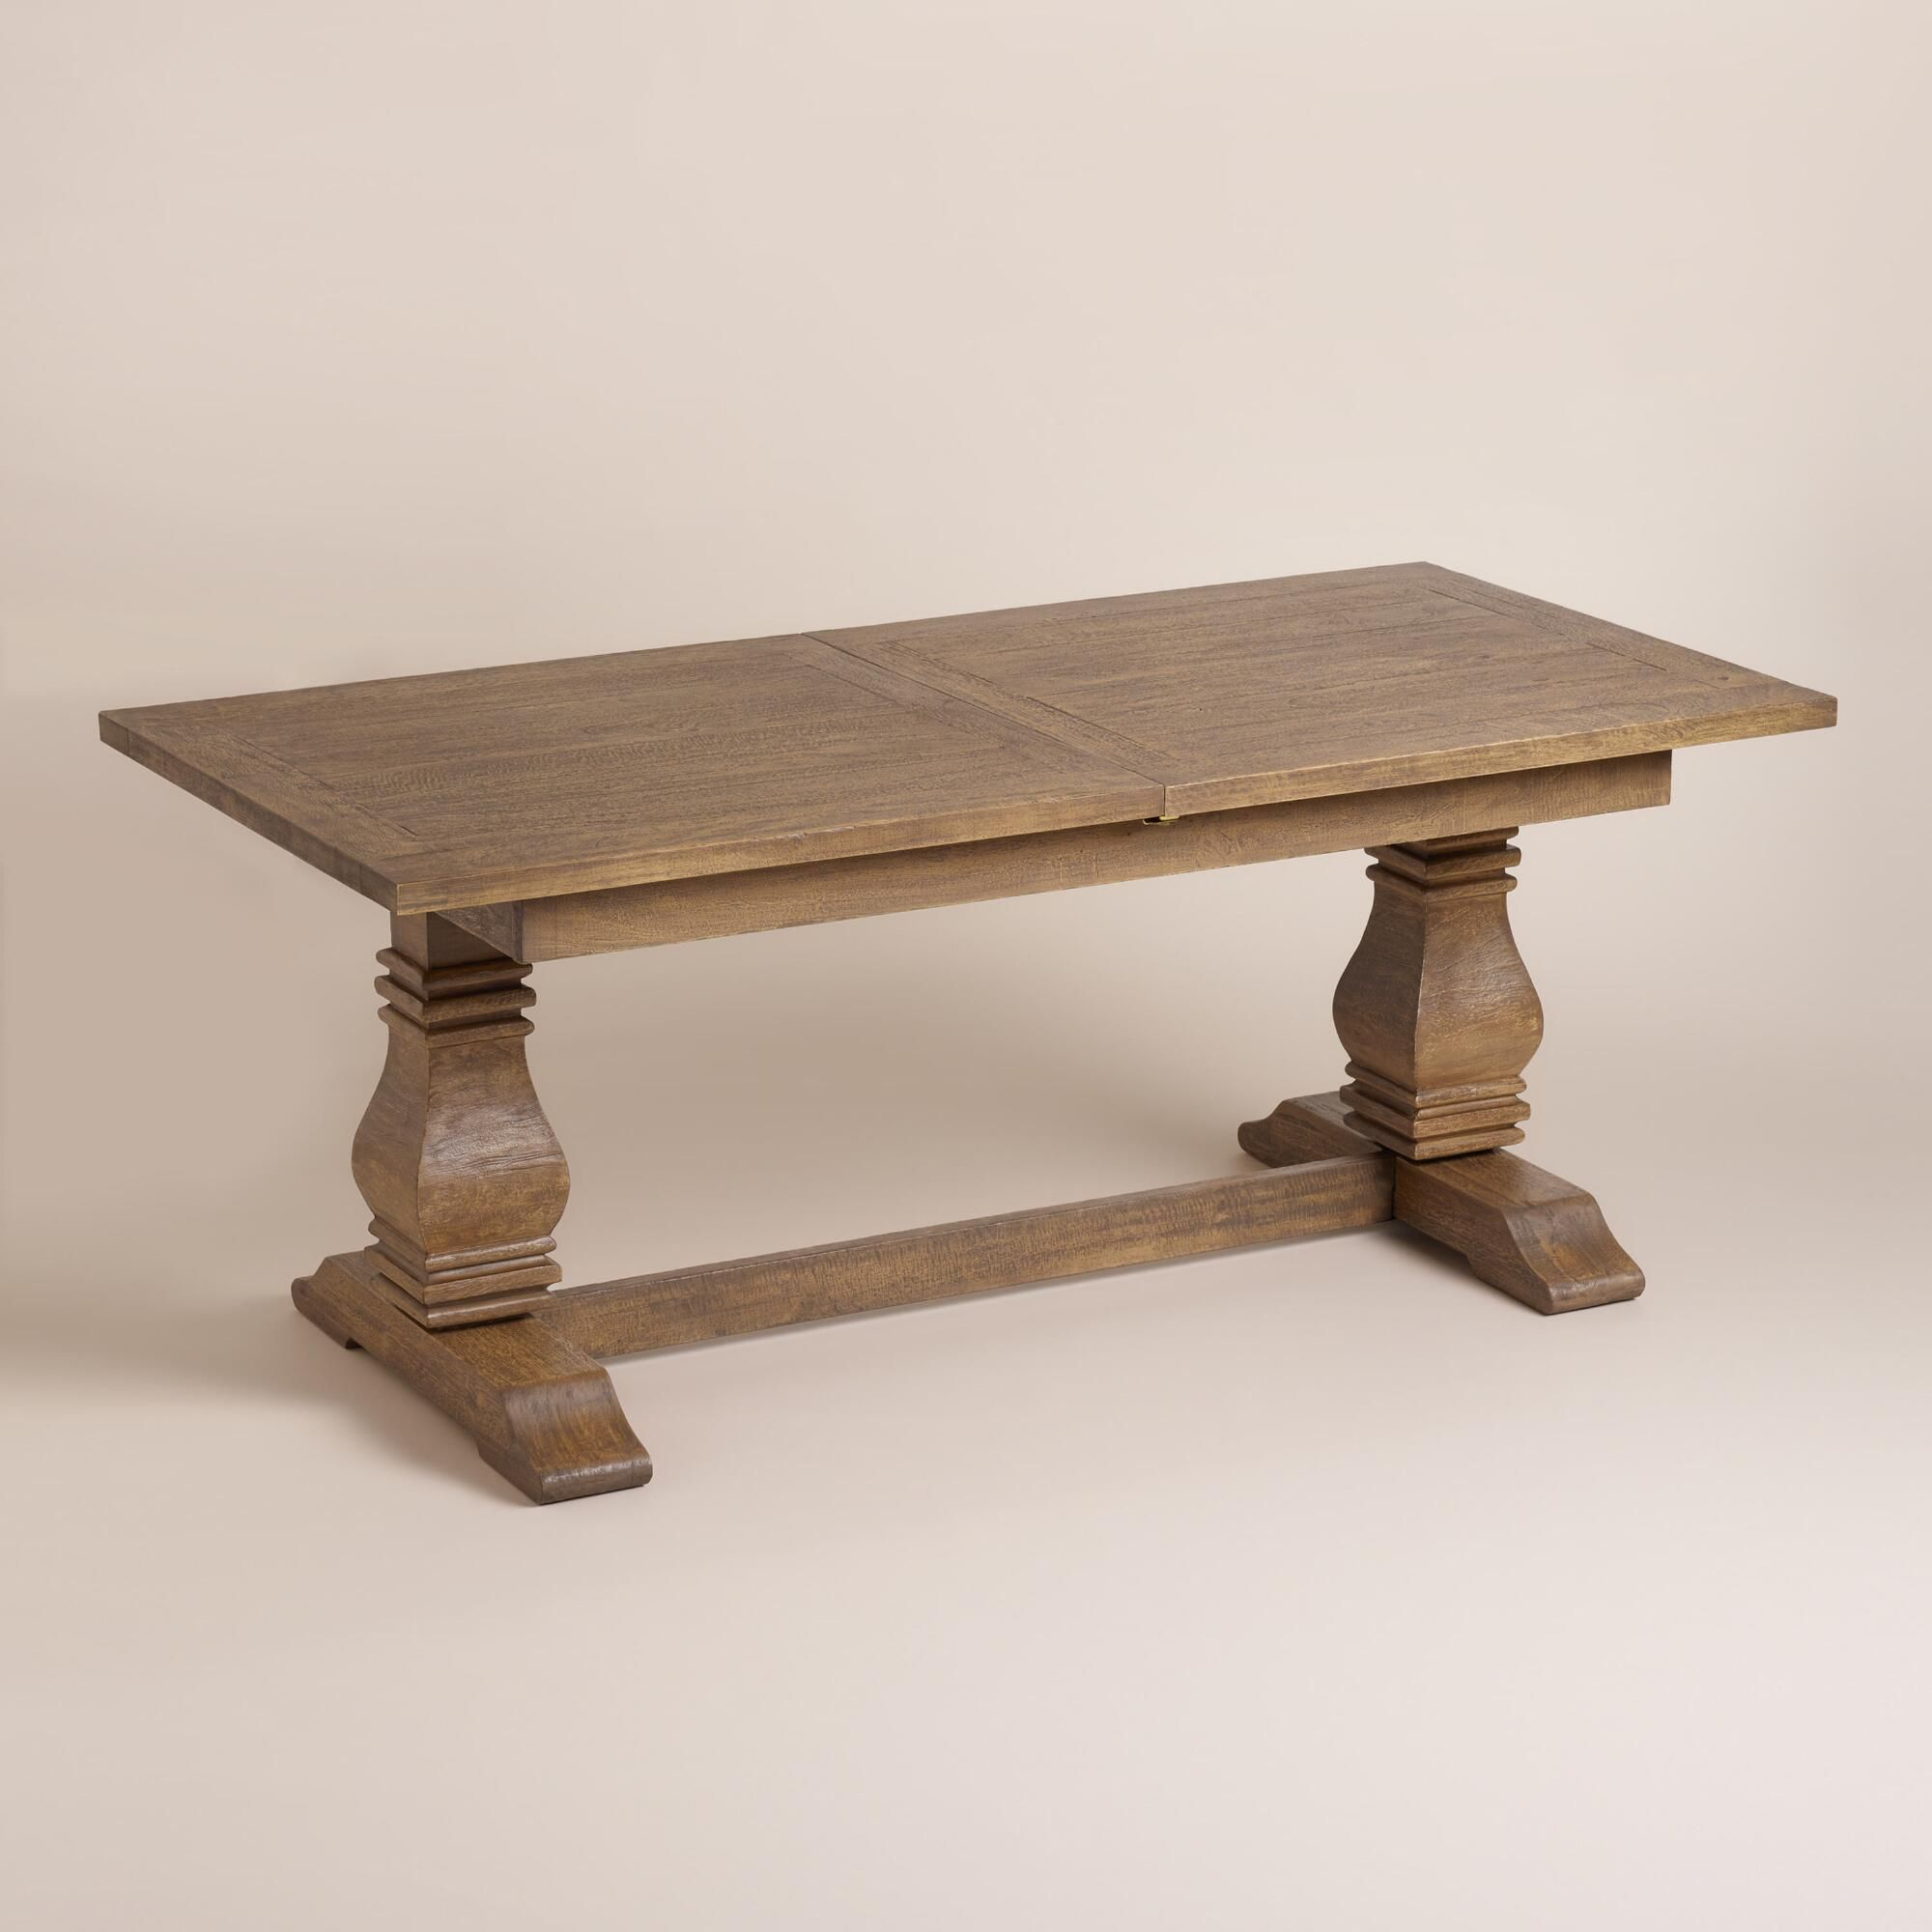 Wood Deighton Extension Dining Table More Country Style